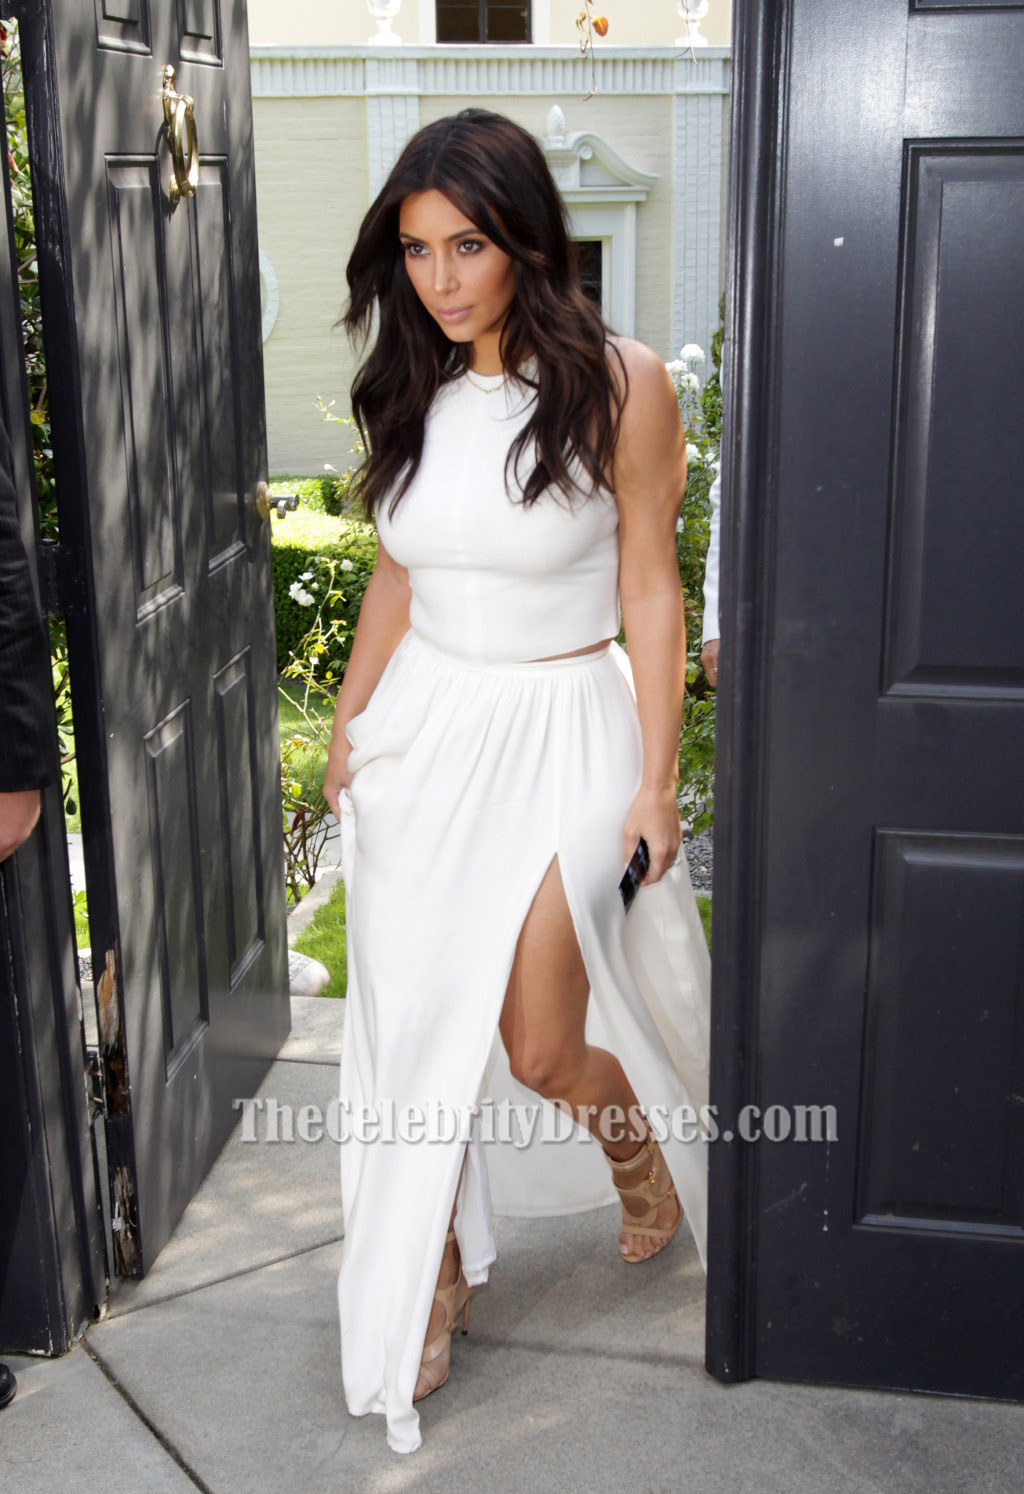 Kim Kardashian 'Ciara's Baby Shower Outift' White Two Pieces Dress ...